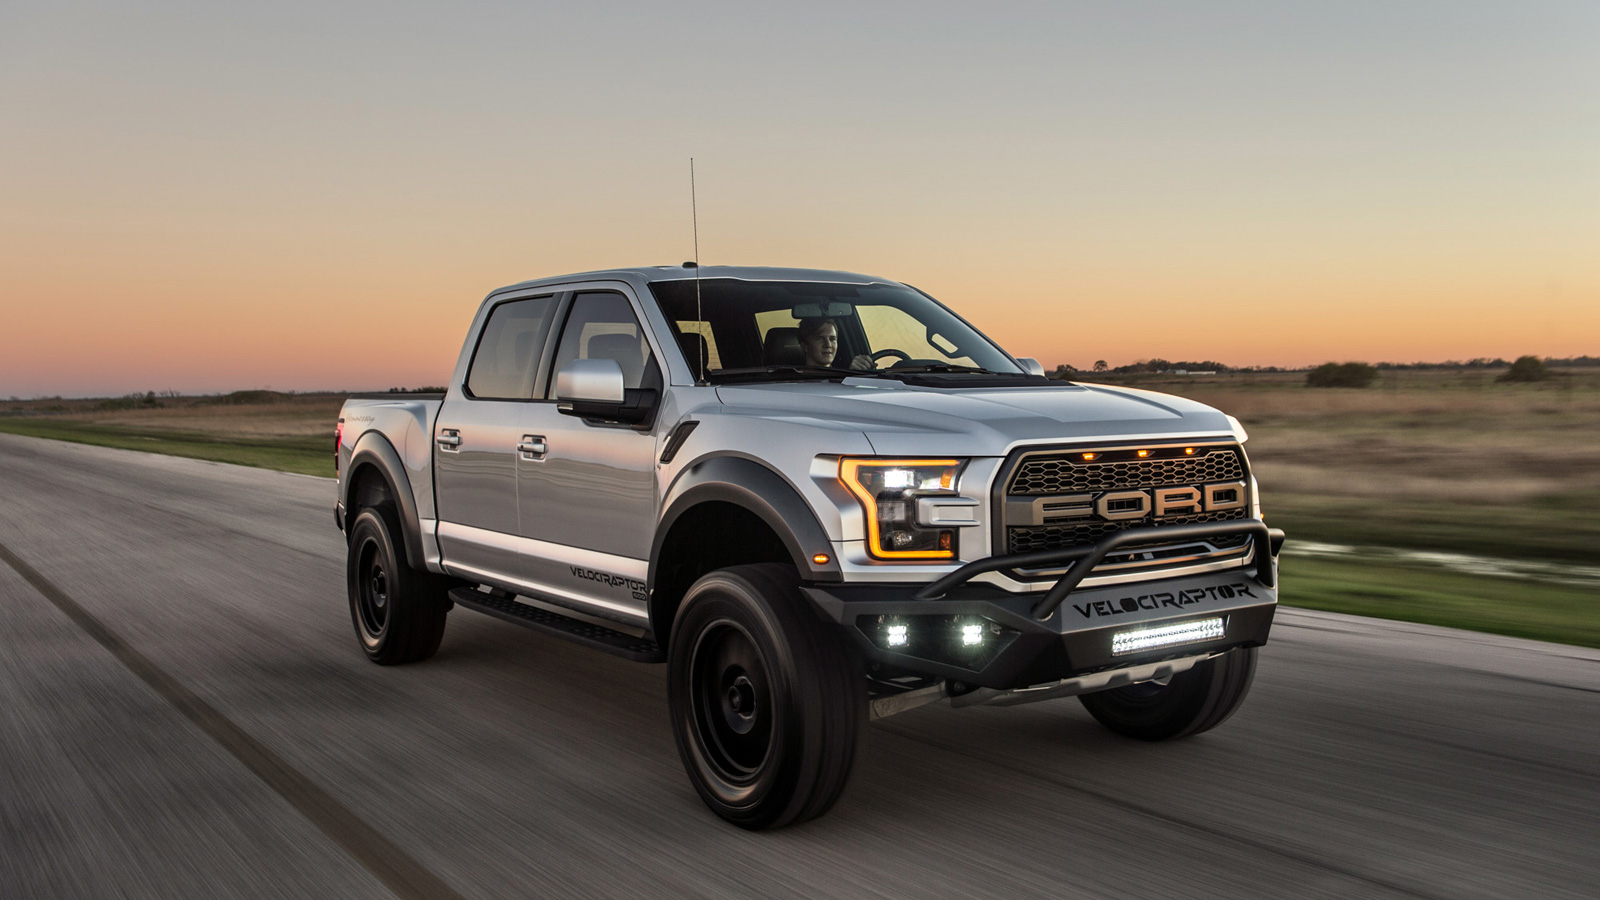 2017 hennessey velociraptor 600 makes the standard ford raptor look boring news. Black Bedroom Furniture Sets. Home Design Ideas